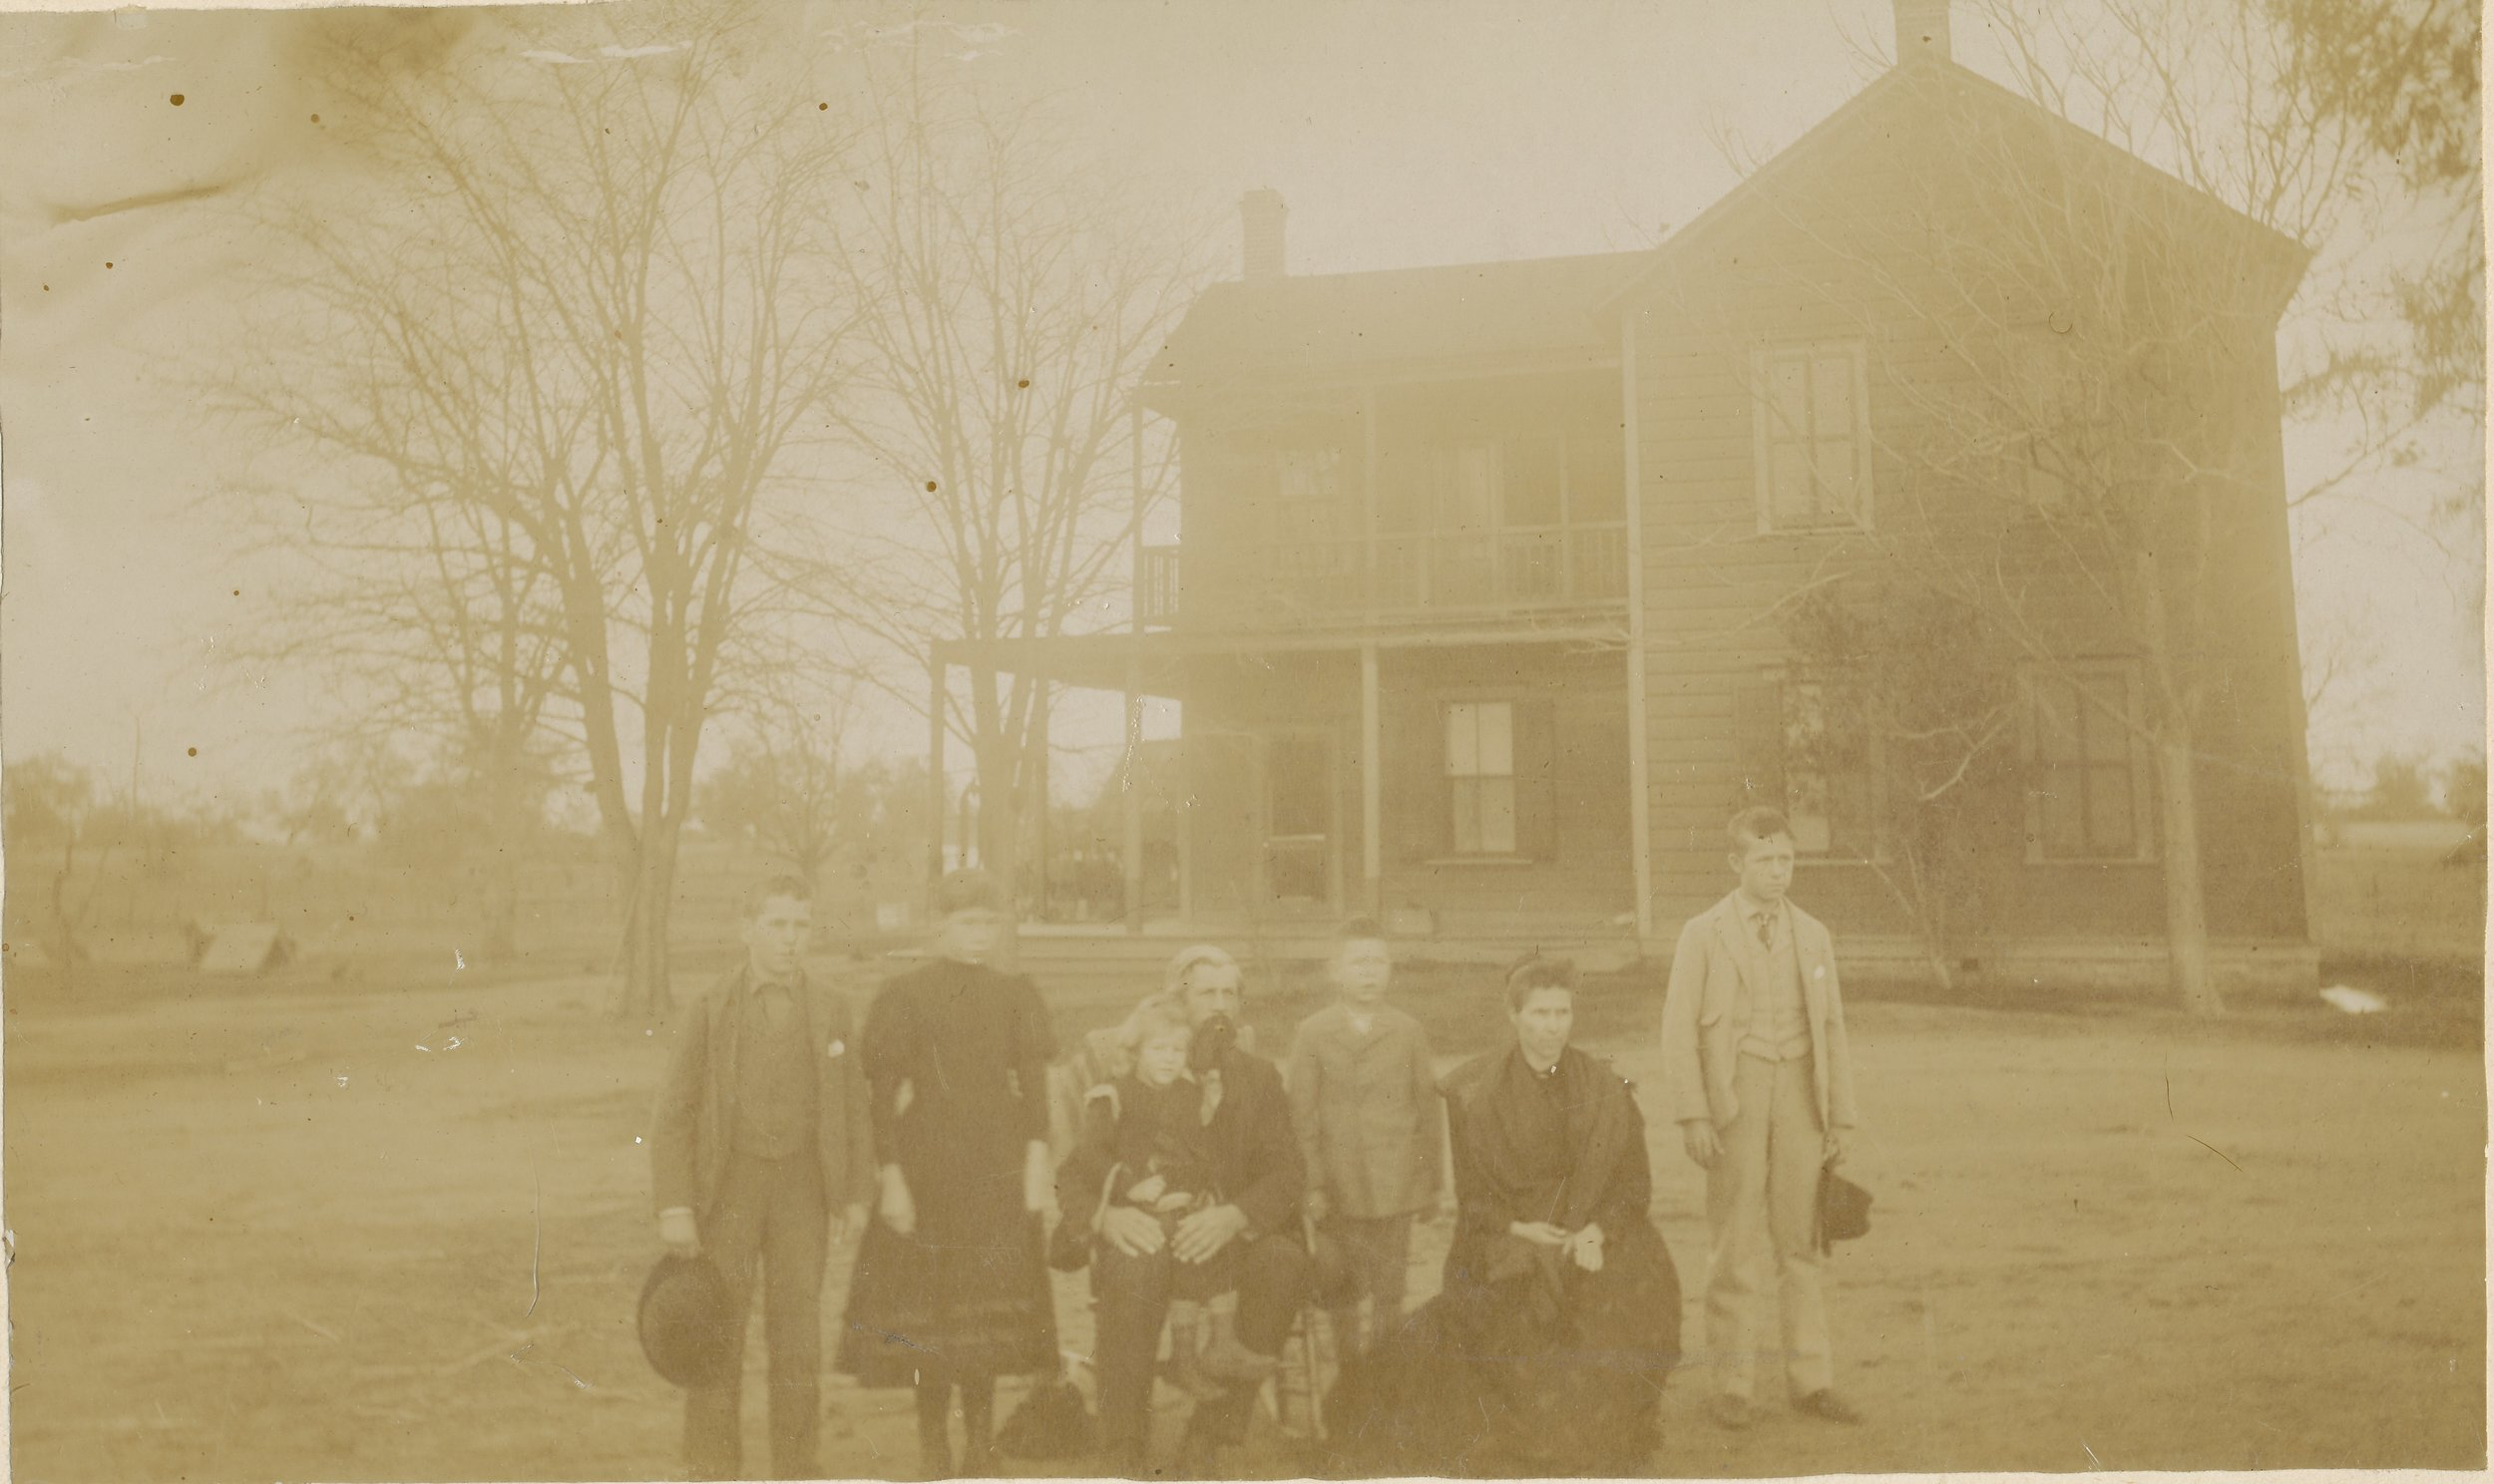 Walter fiddyment and family at the ranch house, circa 1895